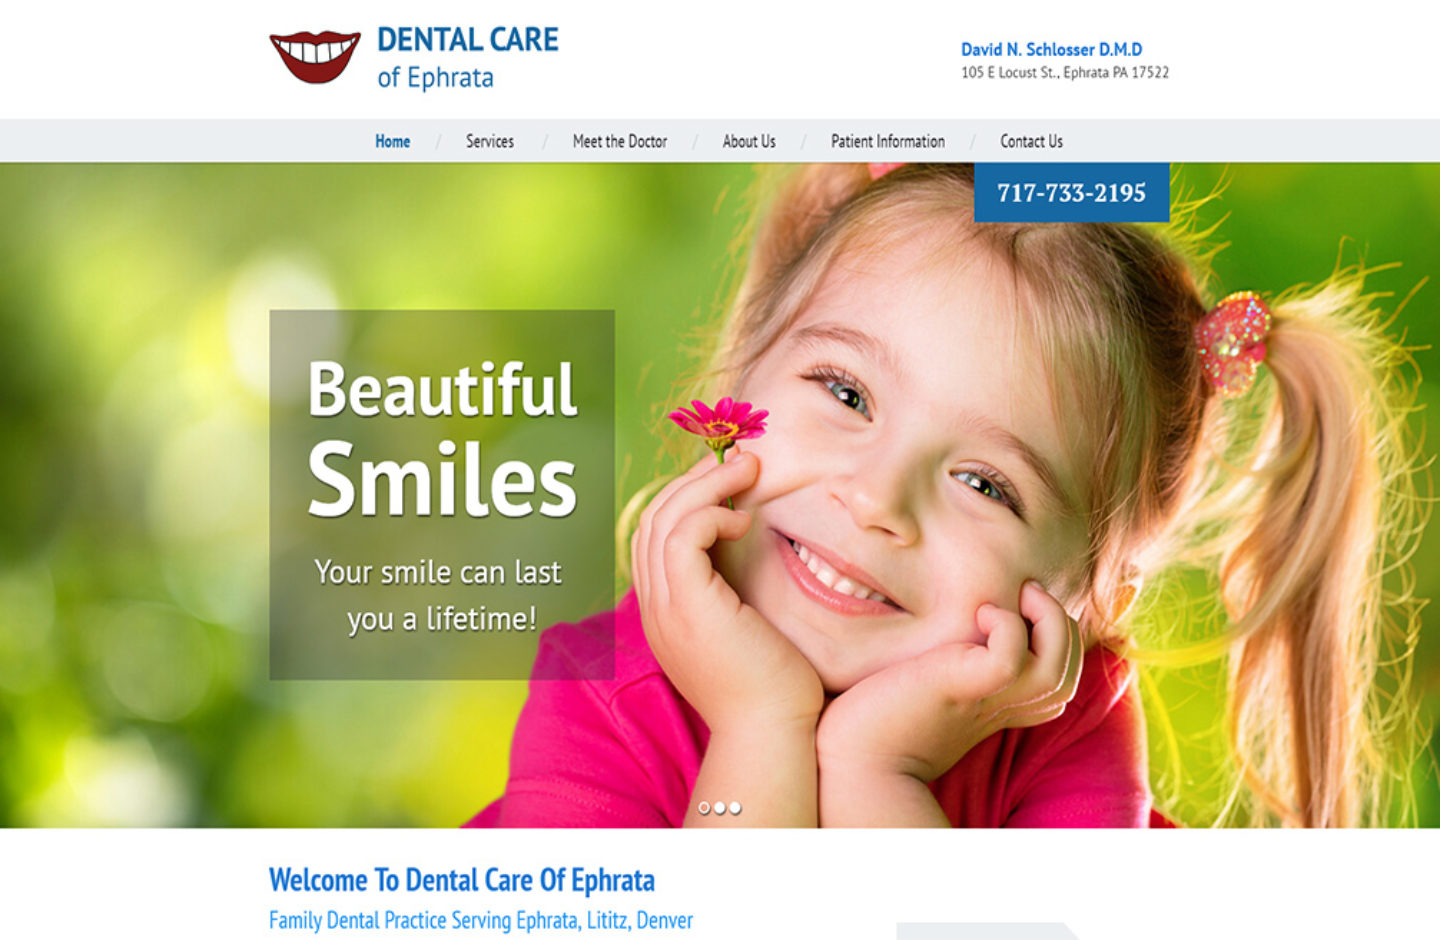 Dental Care of Ephrata